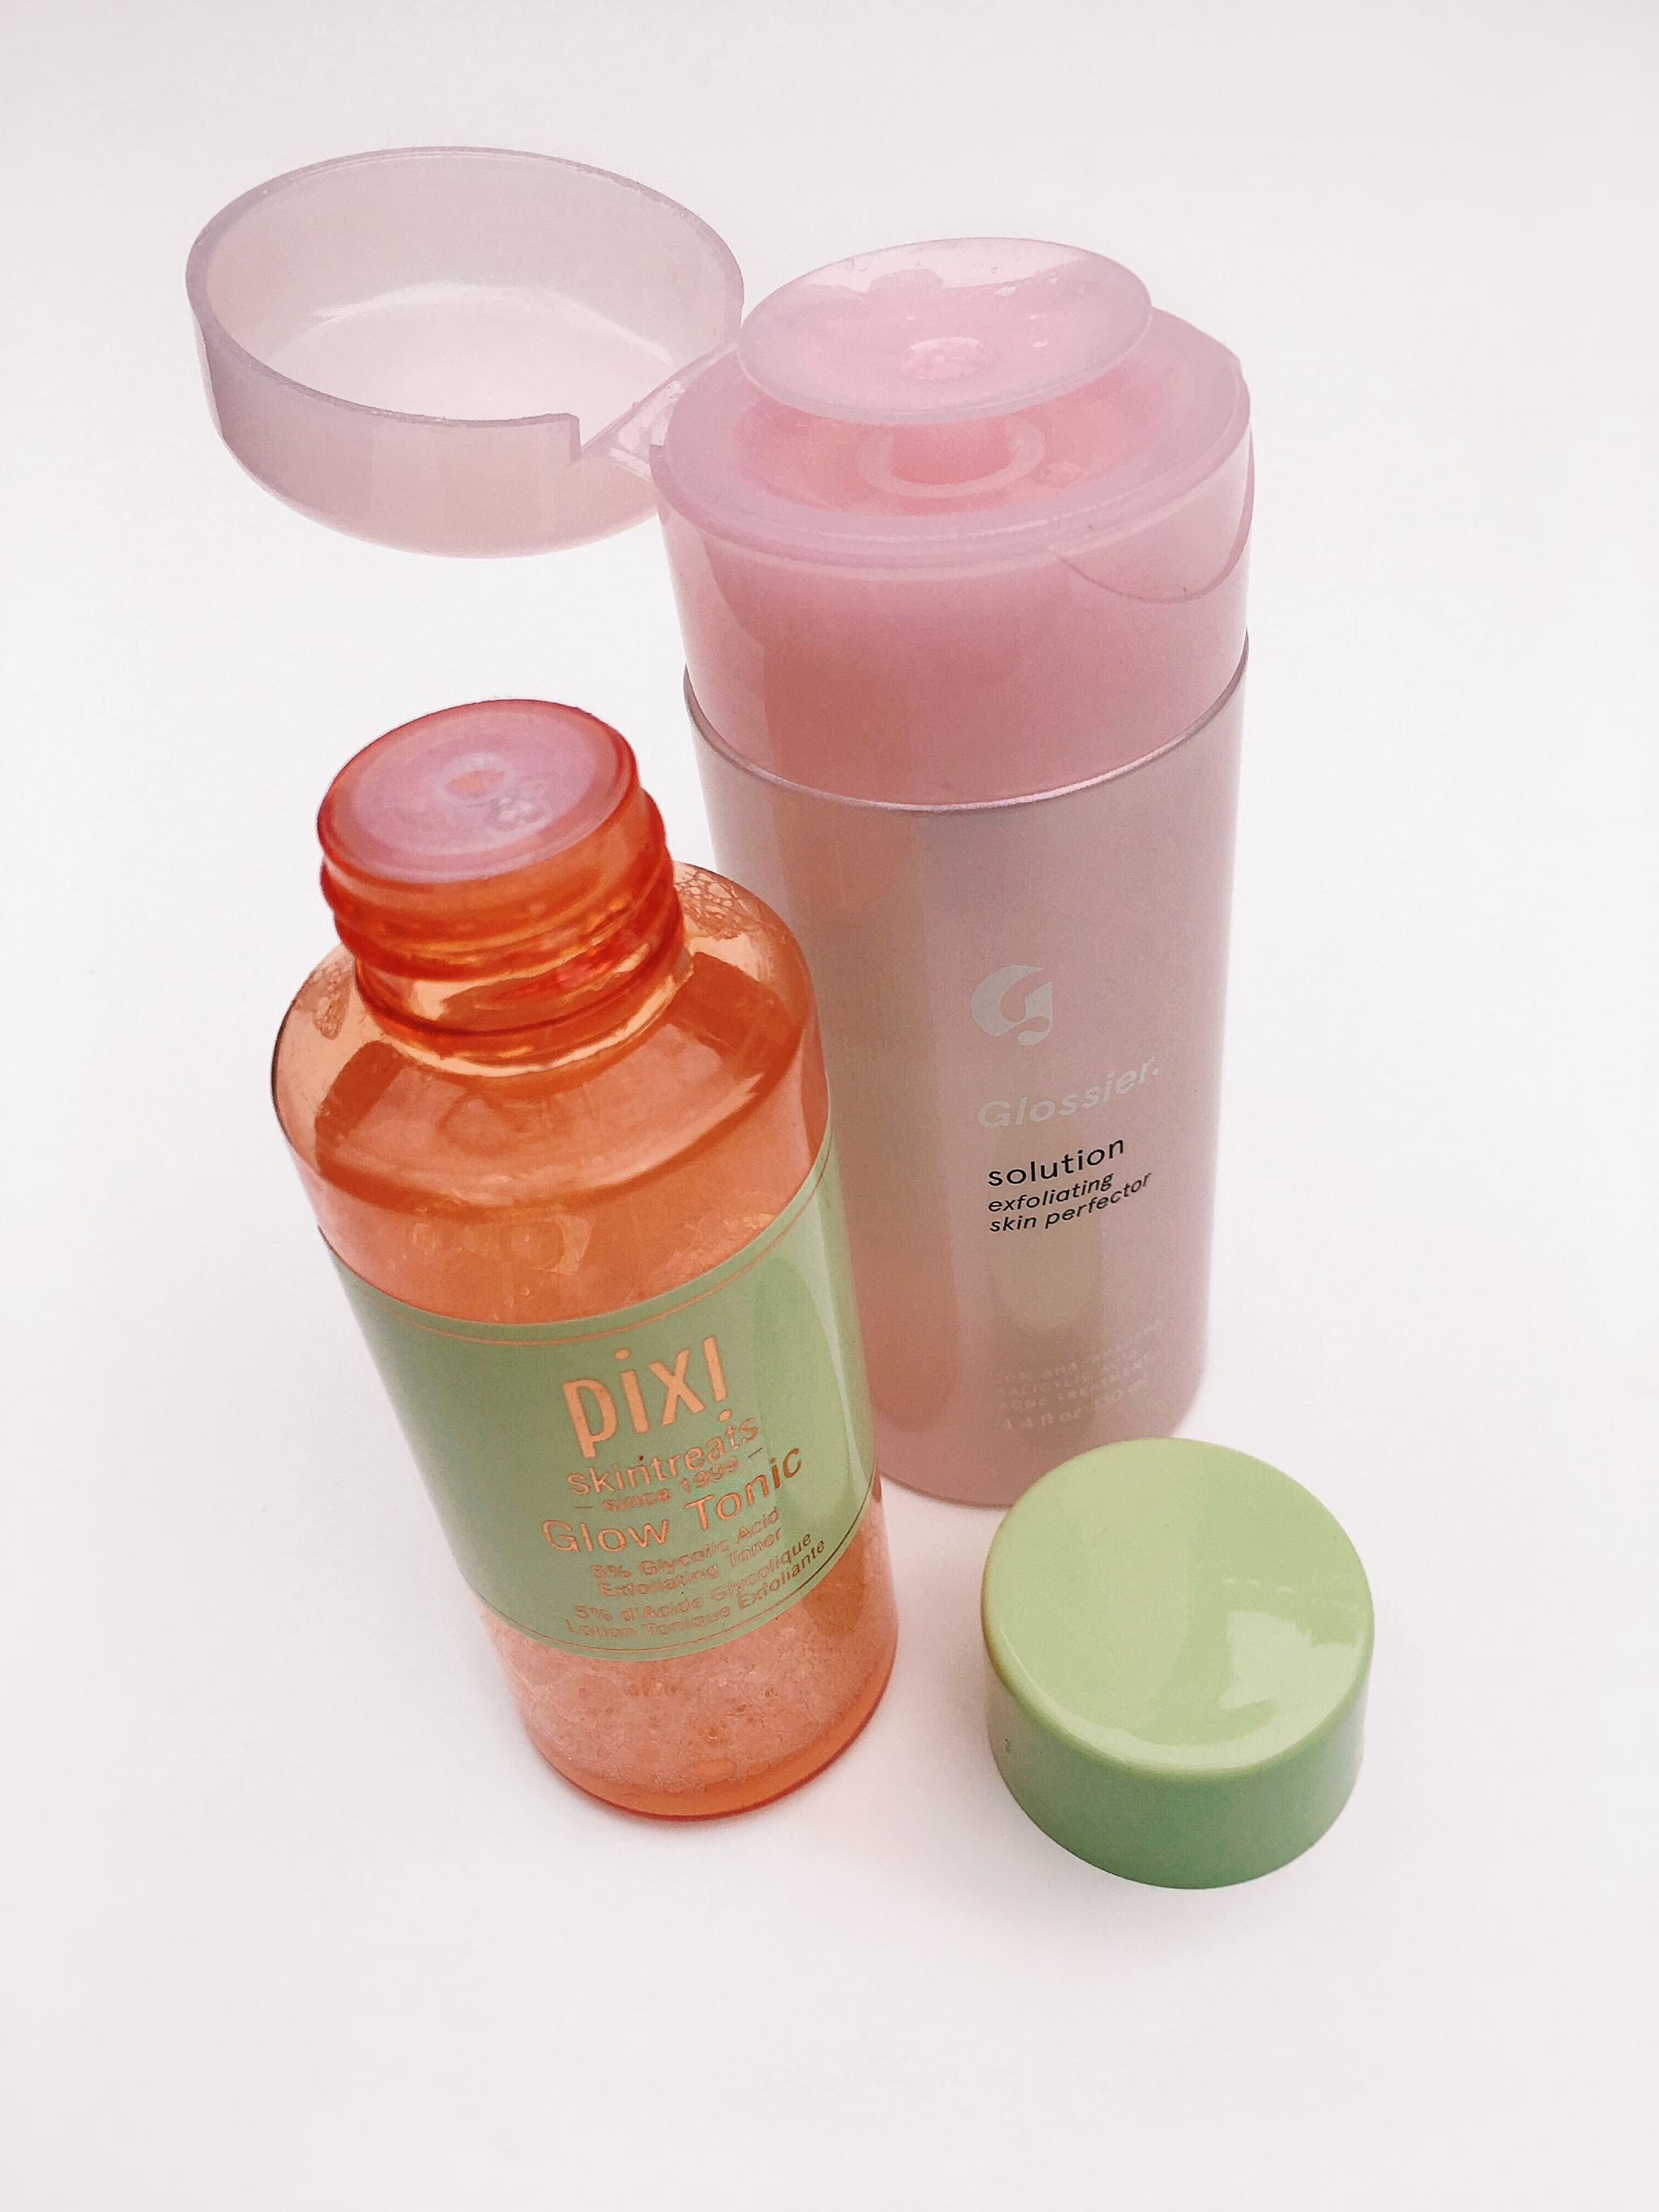 Glossier Solution compared to Pixi Glow Tonic Review